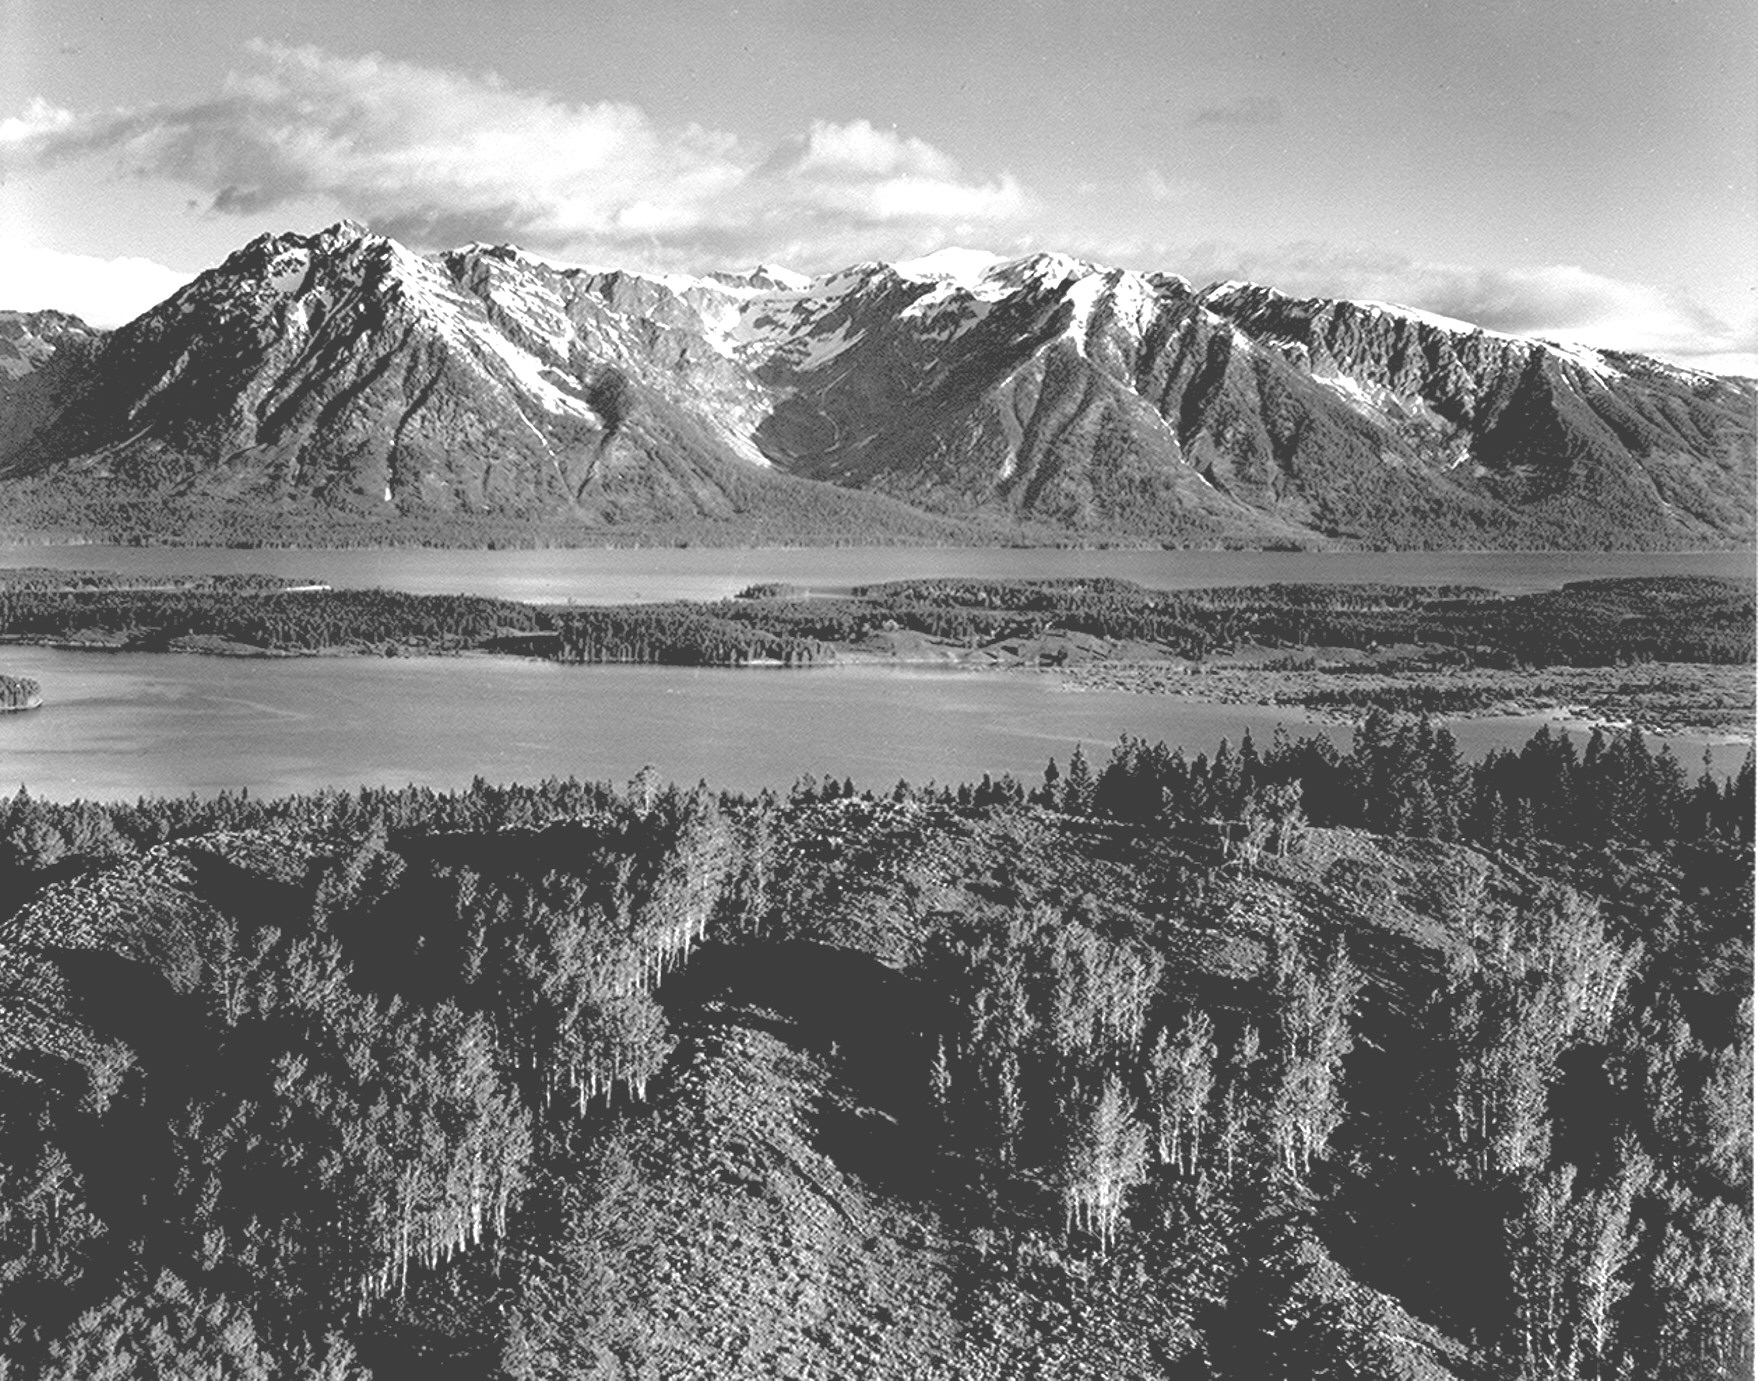 art research ansel adams Ansel adams – photographer, musician, conservationist, naturalist, explorer, critic and teacher – was a giant in the field of landscape photography this exhibition presents the work of iconic american photographer, ansel adams.